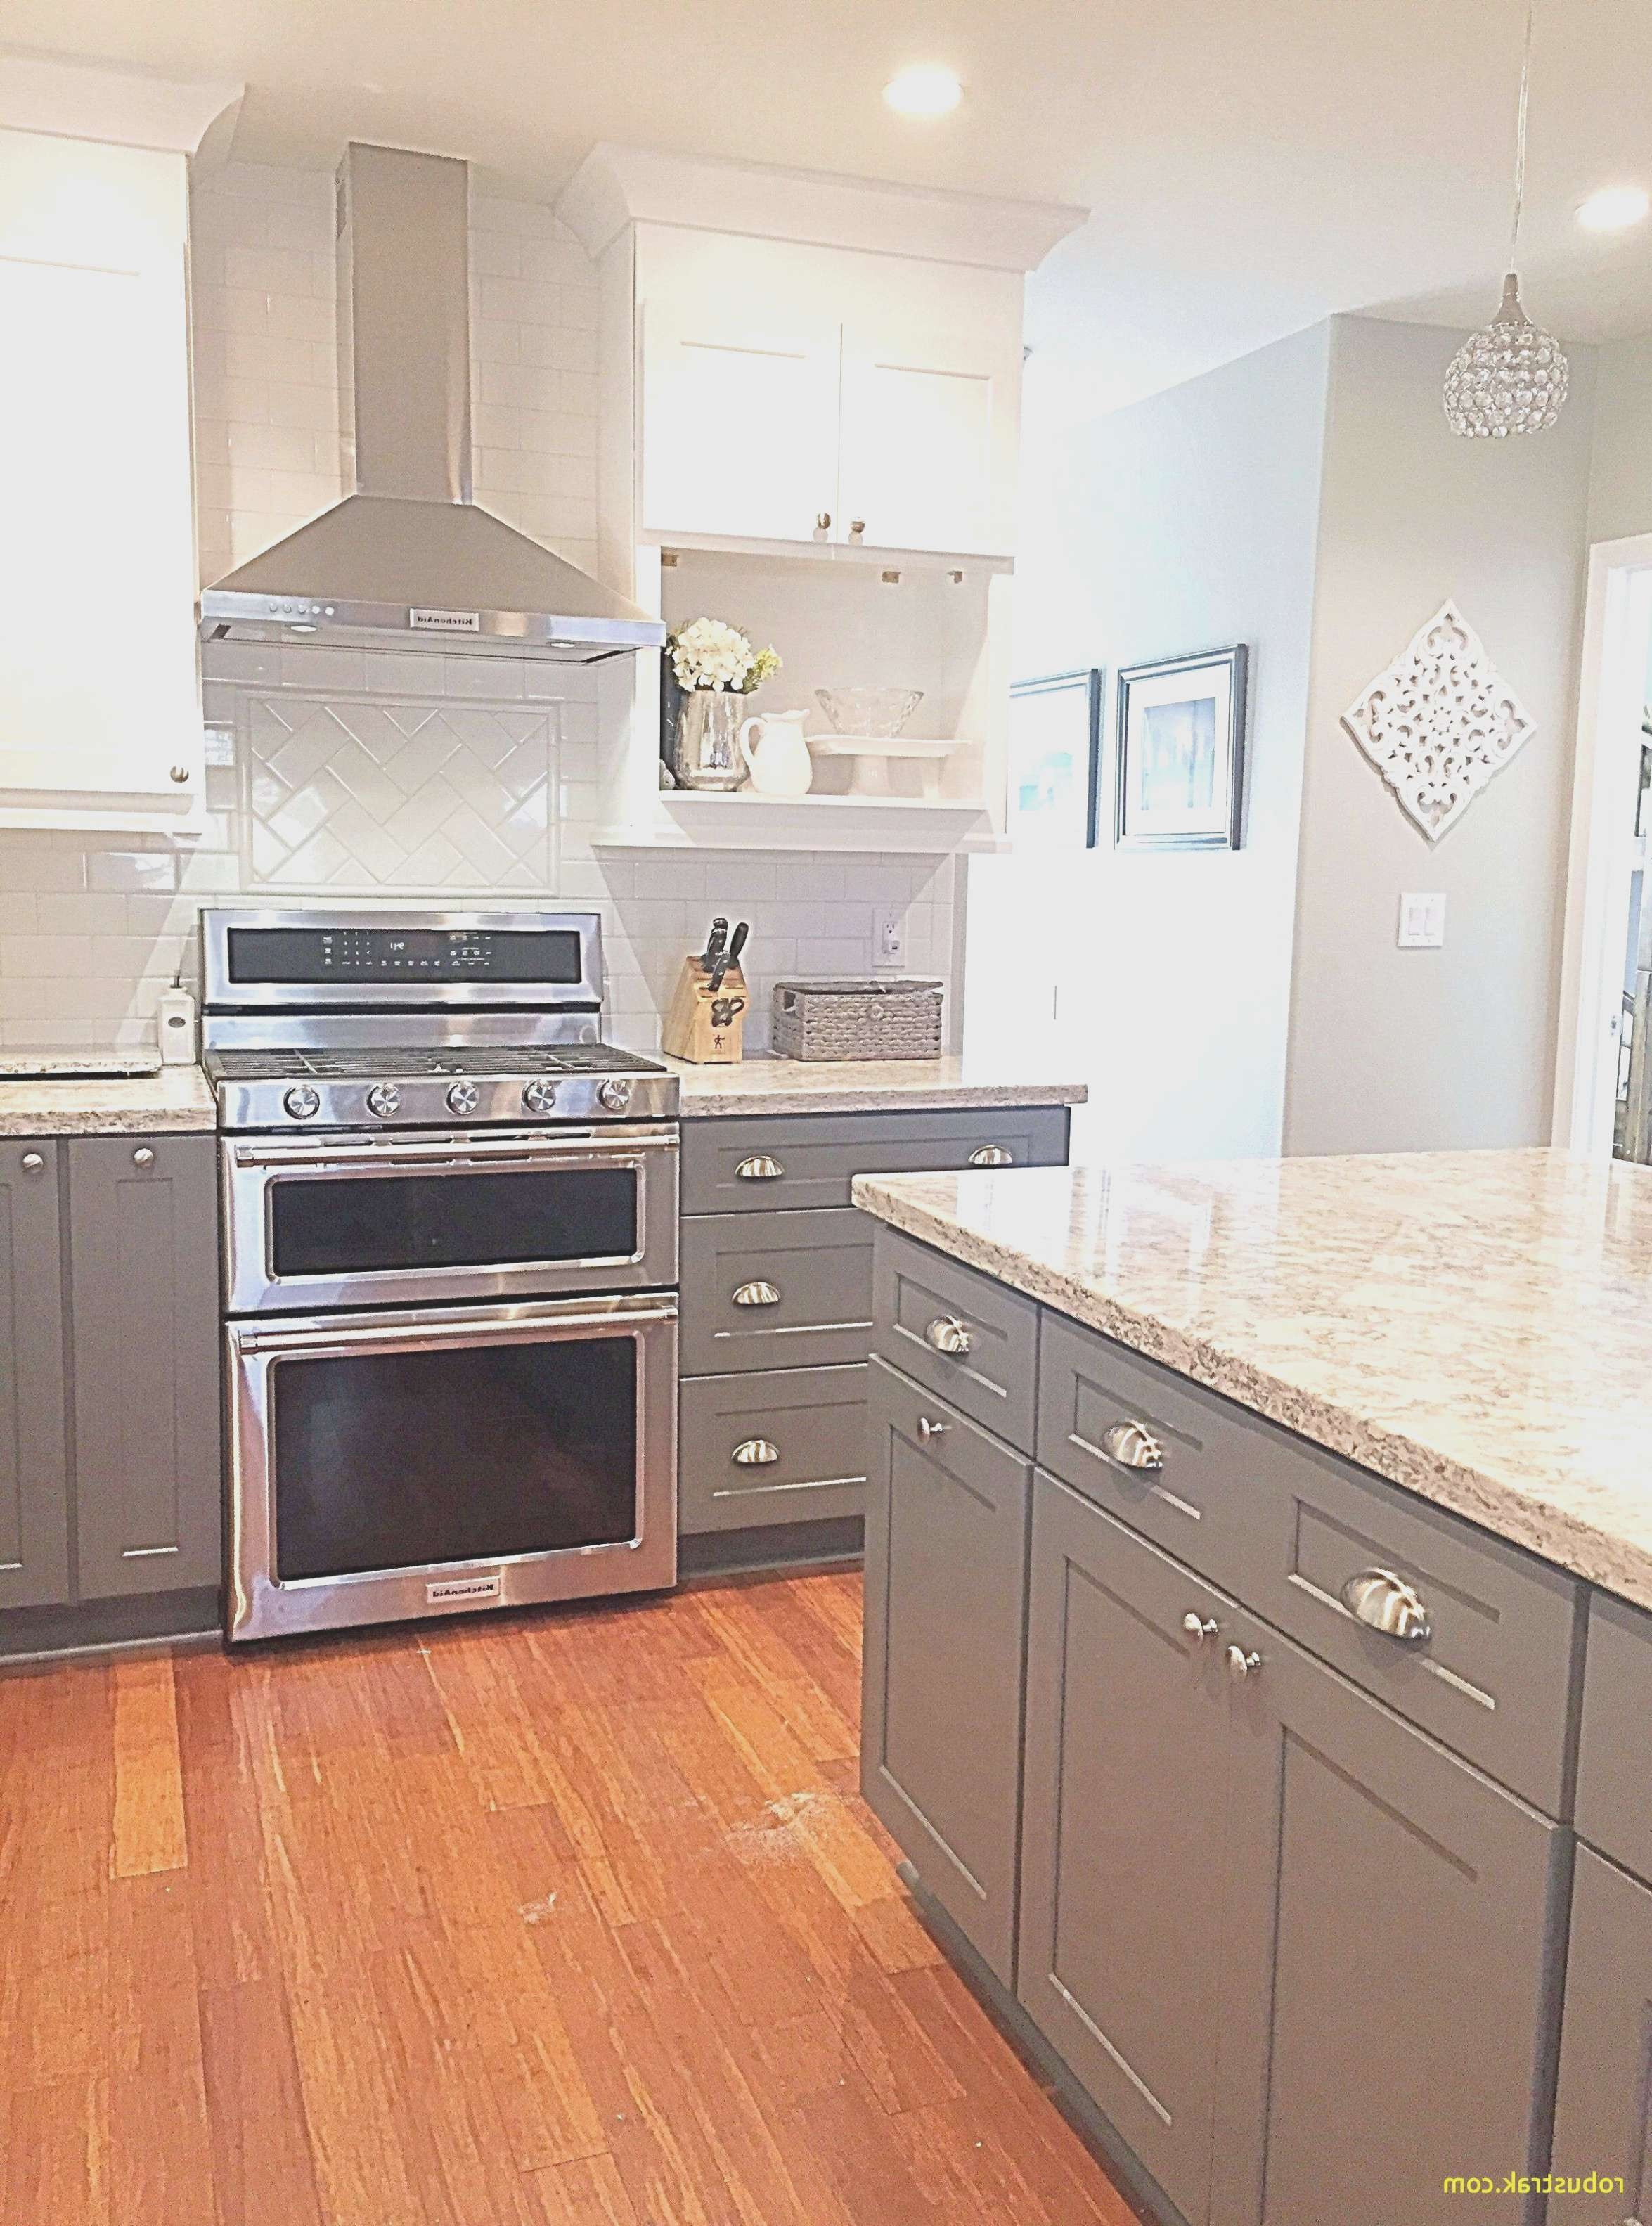 images of hardwood floors in kitchens of fantastic kitchens with wood floors within kitchen decor items inside fantastic kitchens with wood floors within kitchen decor items luxury kitchen kitchen floors kitchen floors 0d